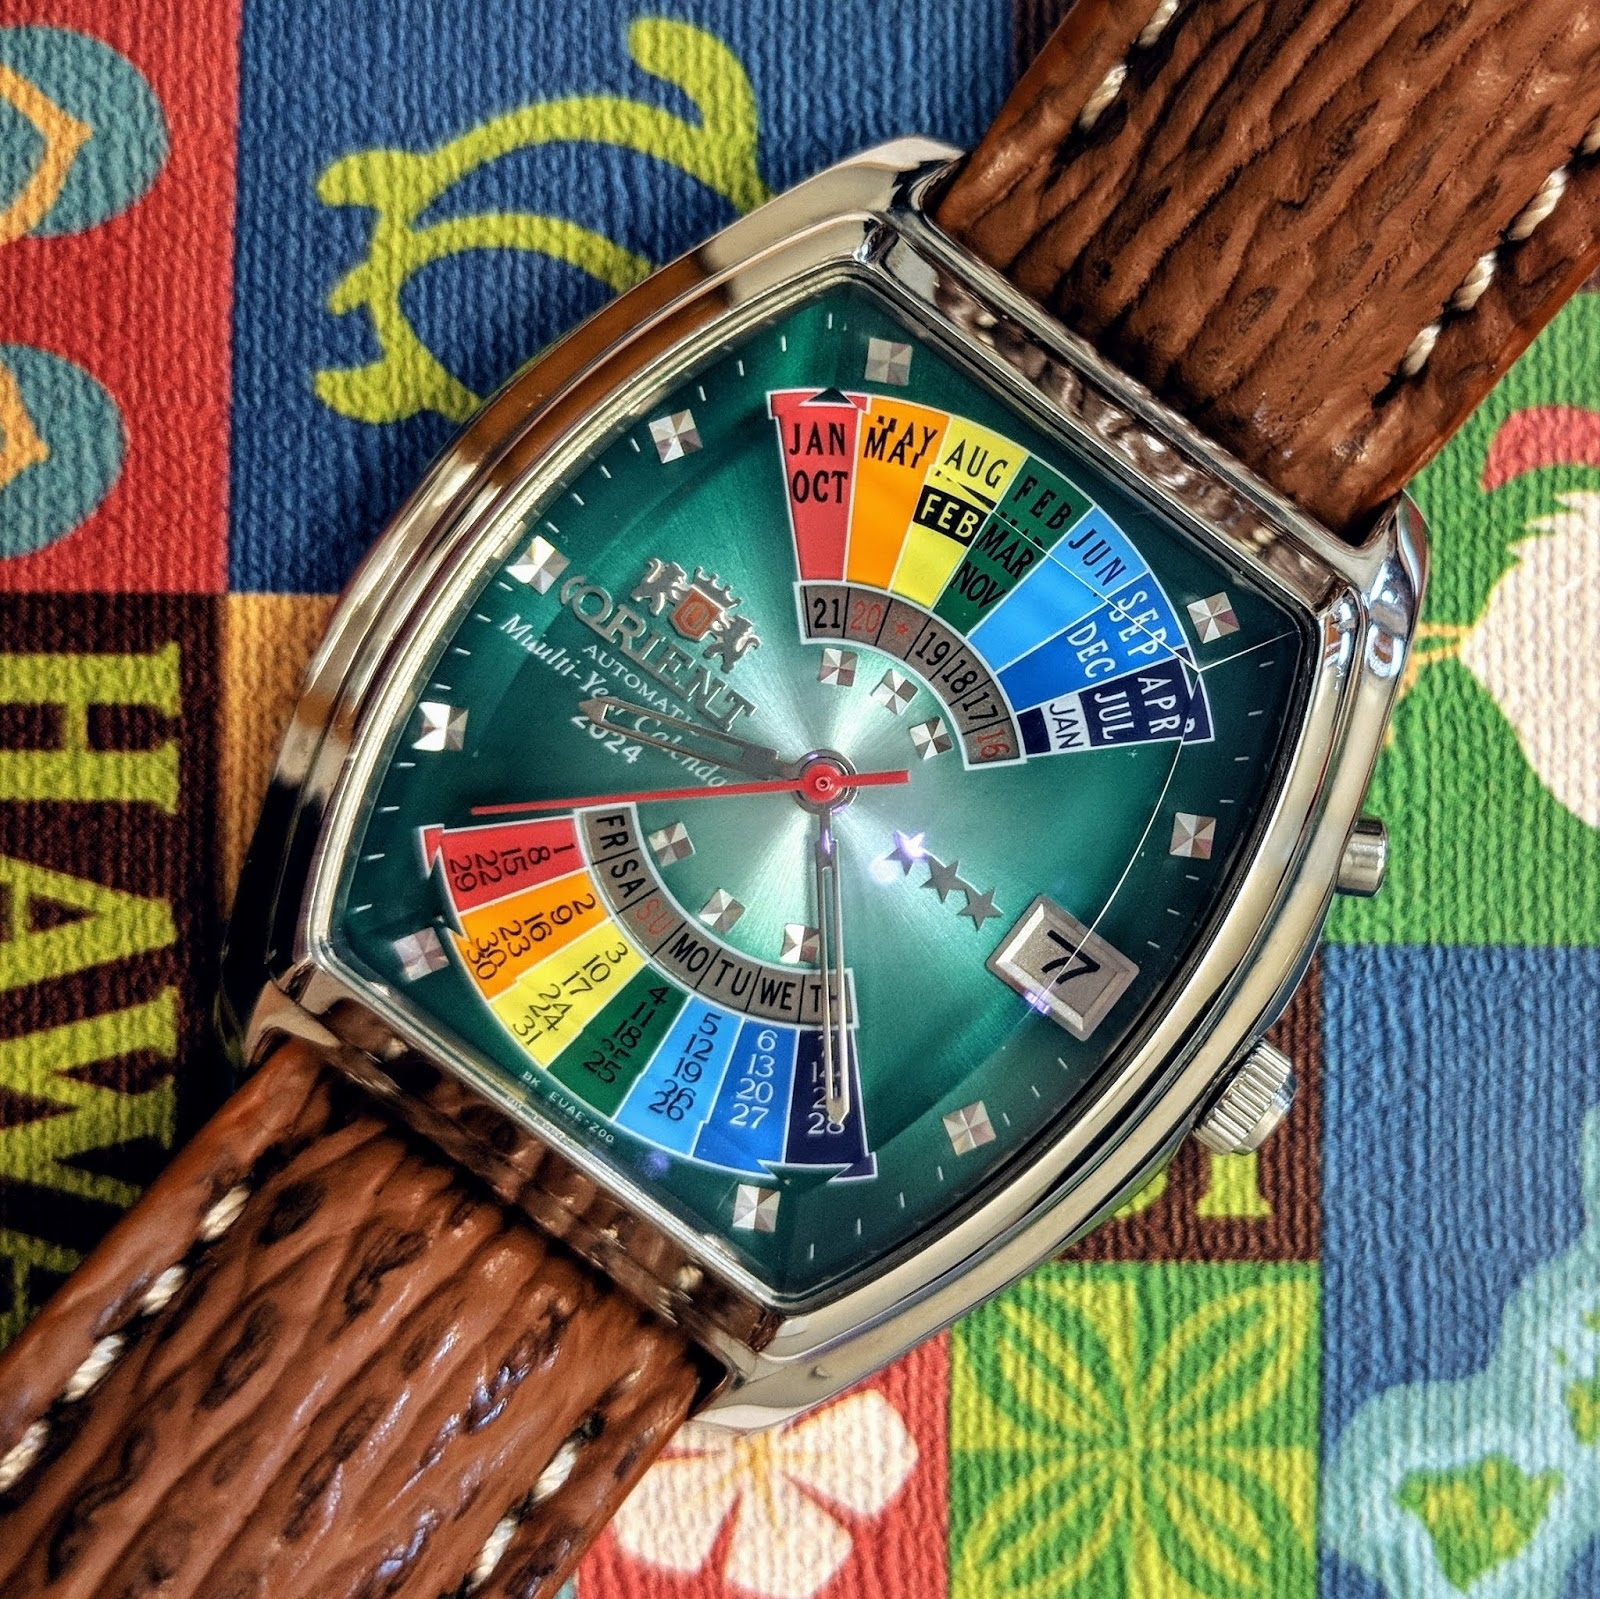 Orient Place - The Place For Orient Watch Collectors And